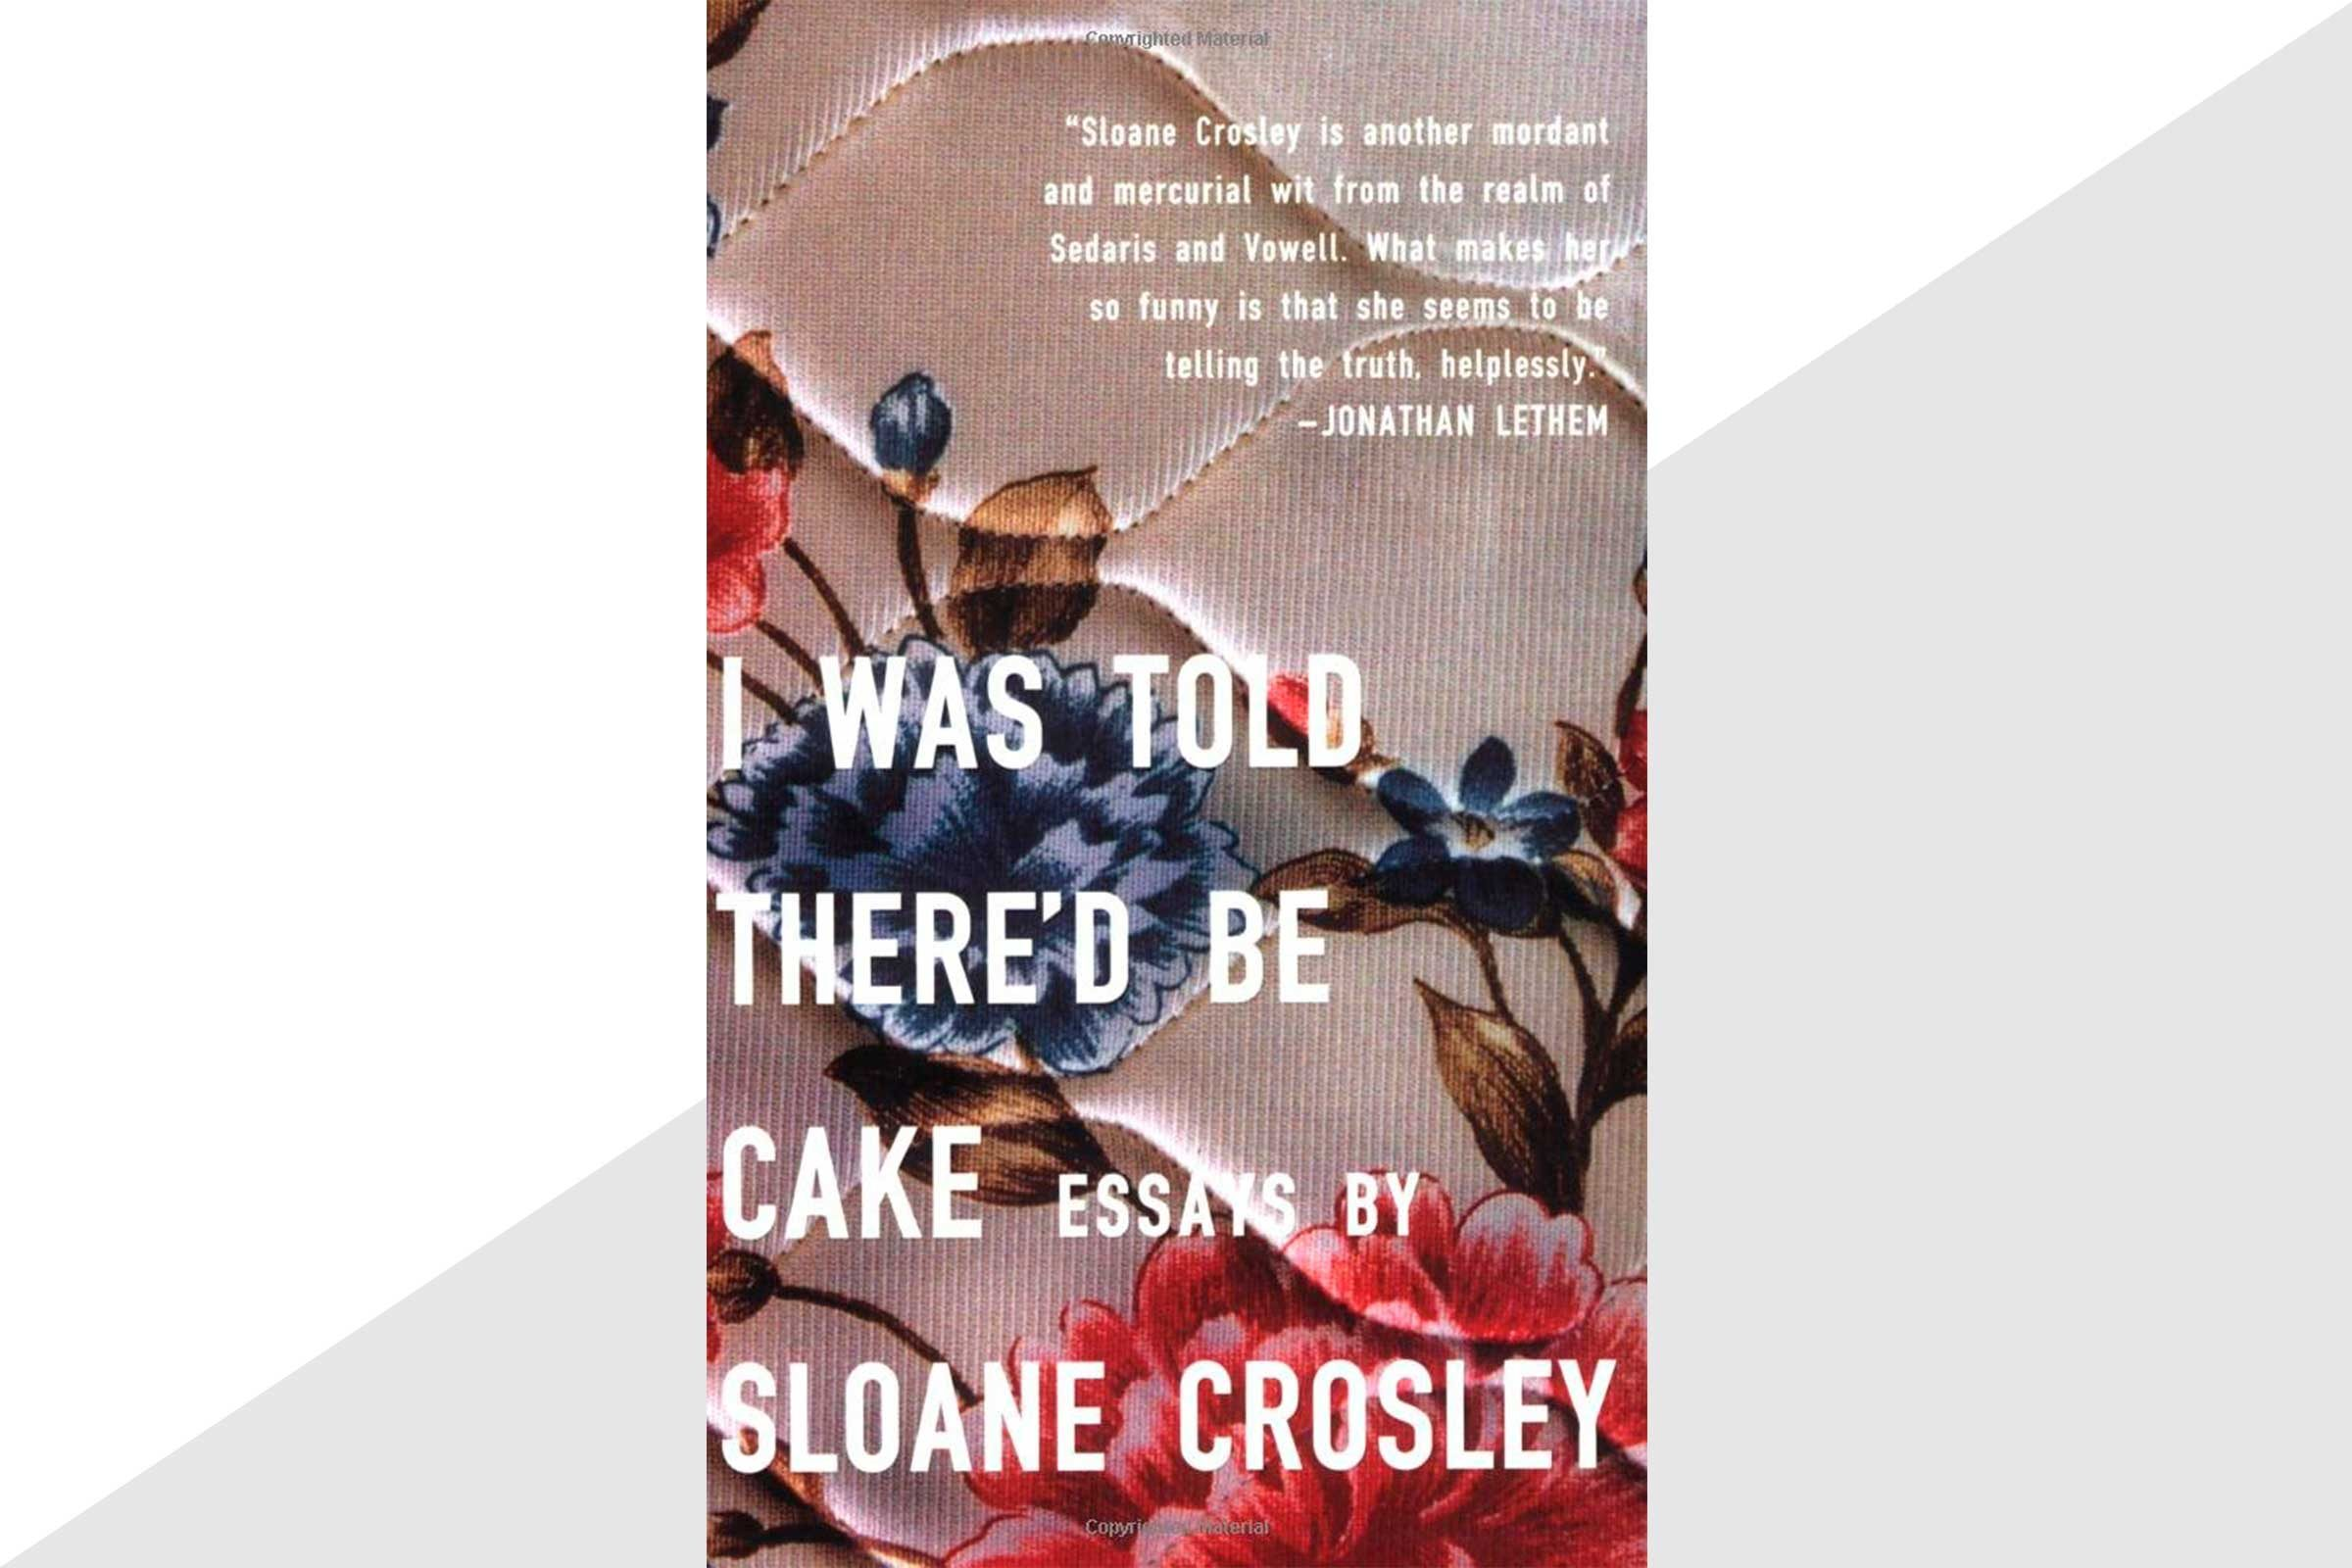 'I Was Told There'd Be Cake' by Sloane Crosley